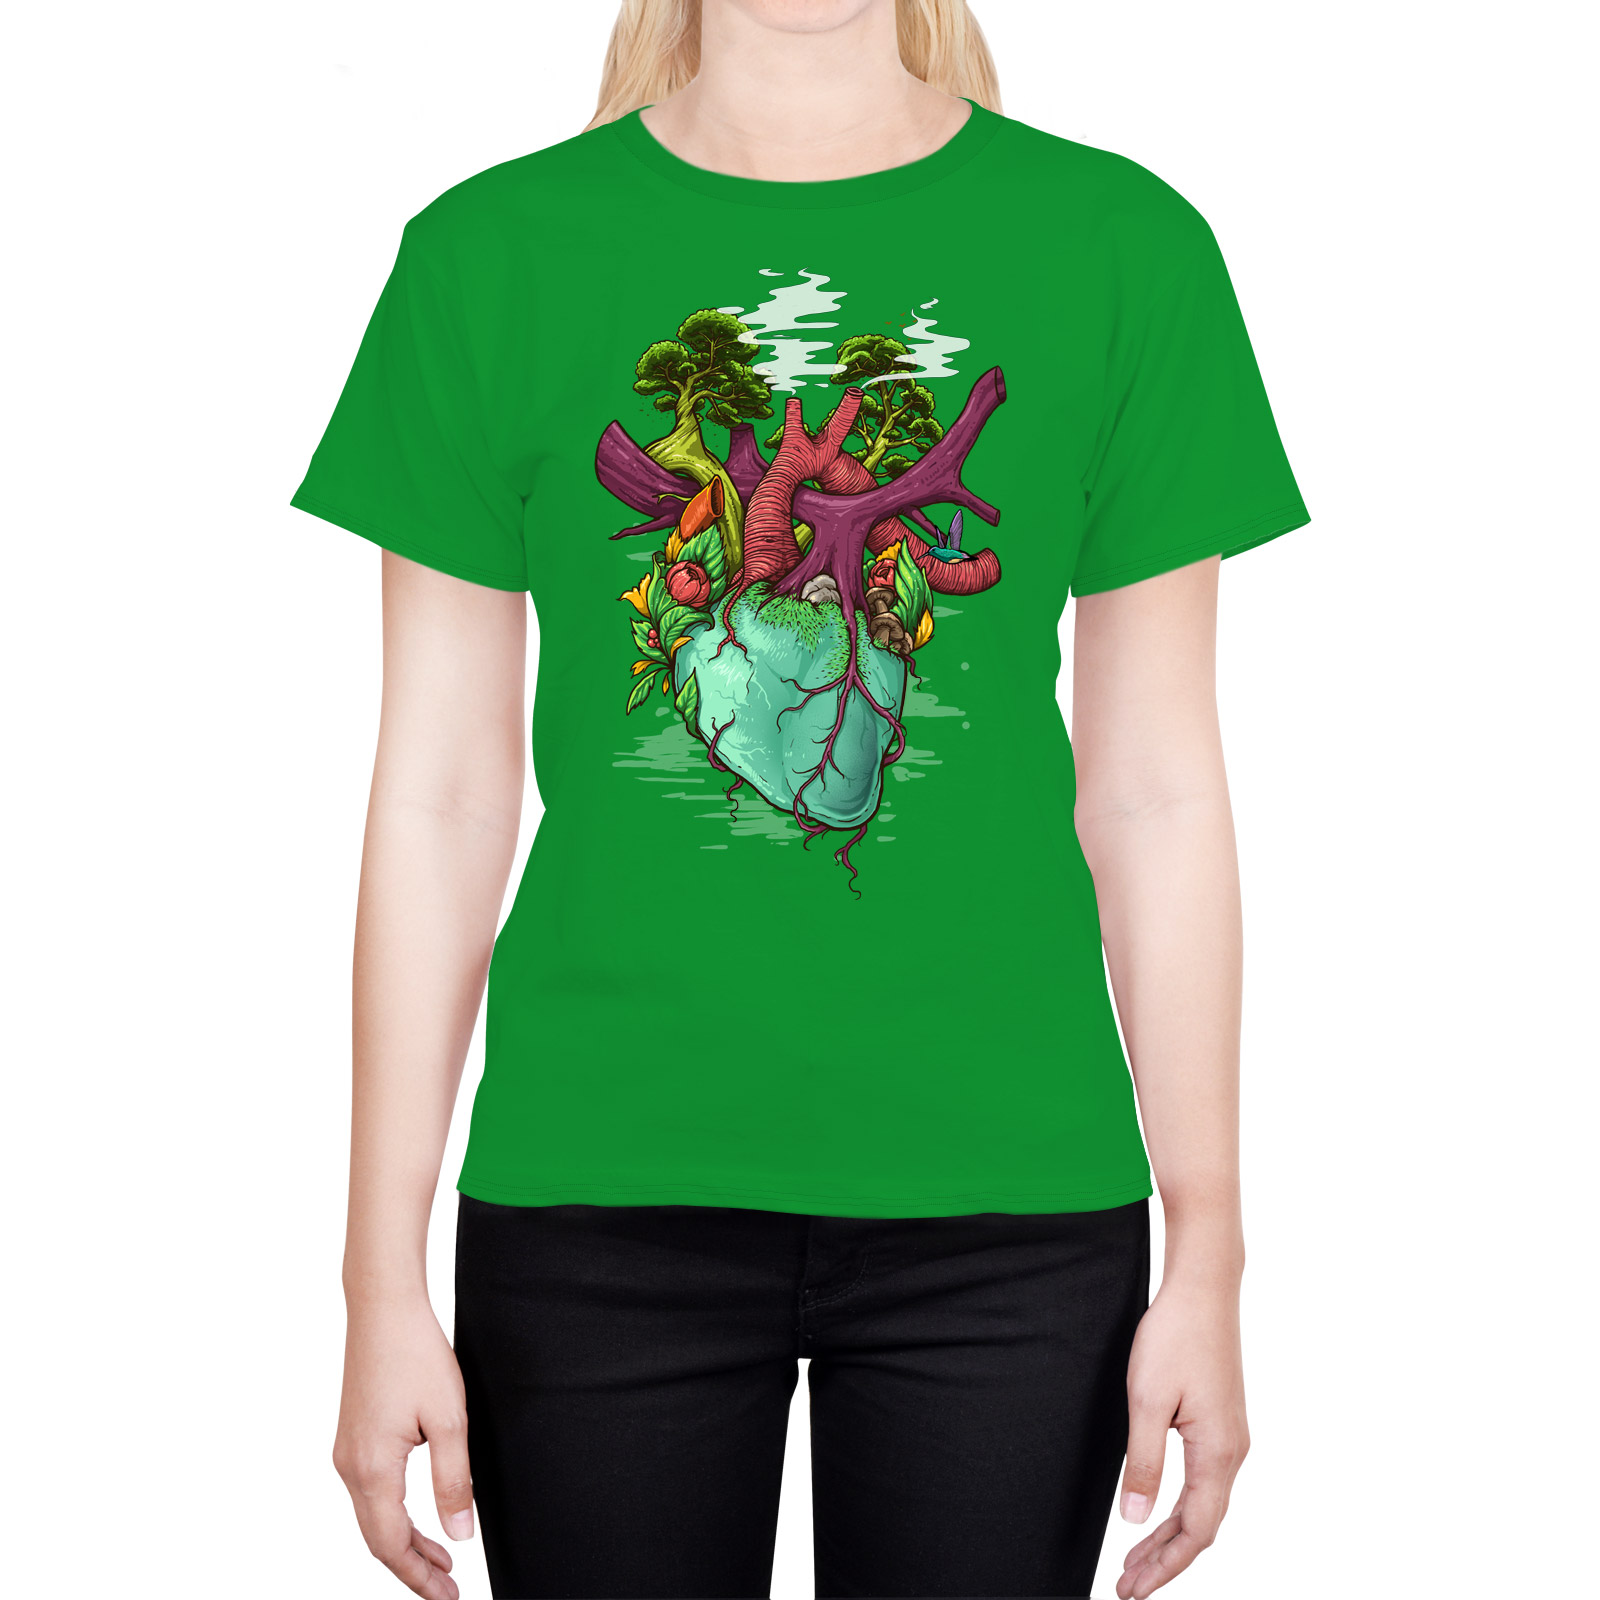 Design womens t-shirts in seconds at gehedoruqigimate.ml With a huge collection of clipart, fonts, and over 60+ ink colors to choose from, your custom womens t-shirts will be designed to perfection/5(K).